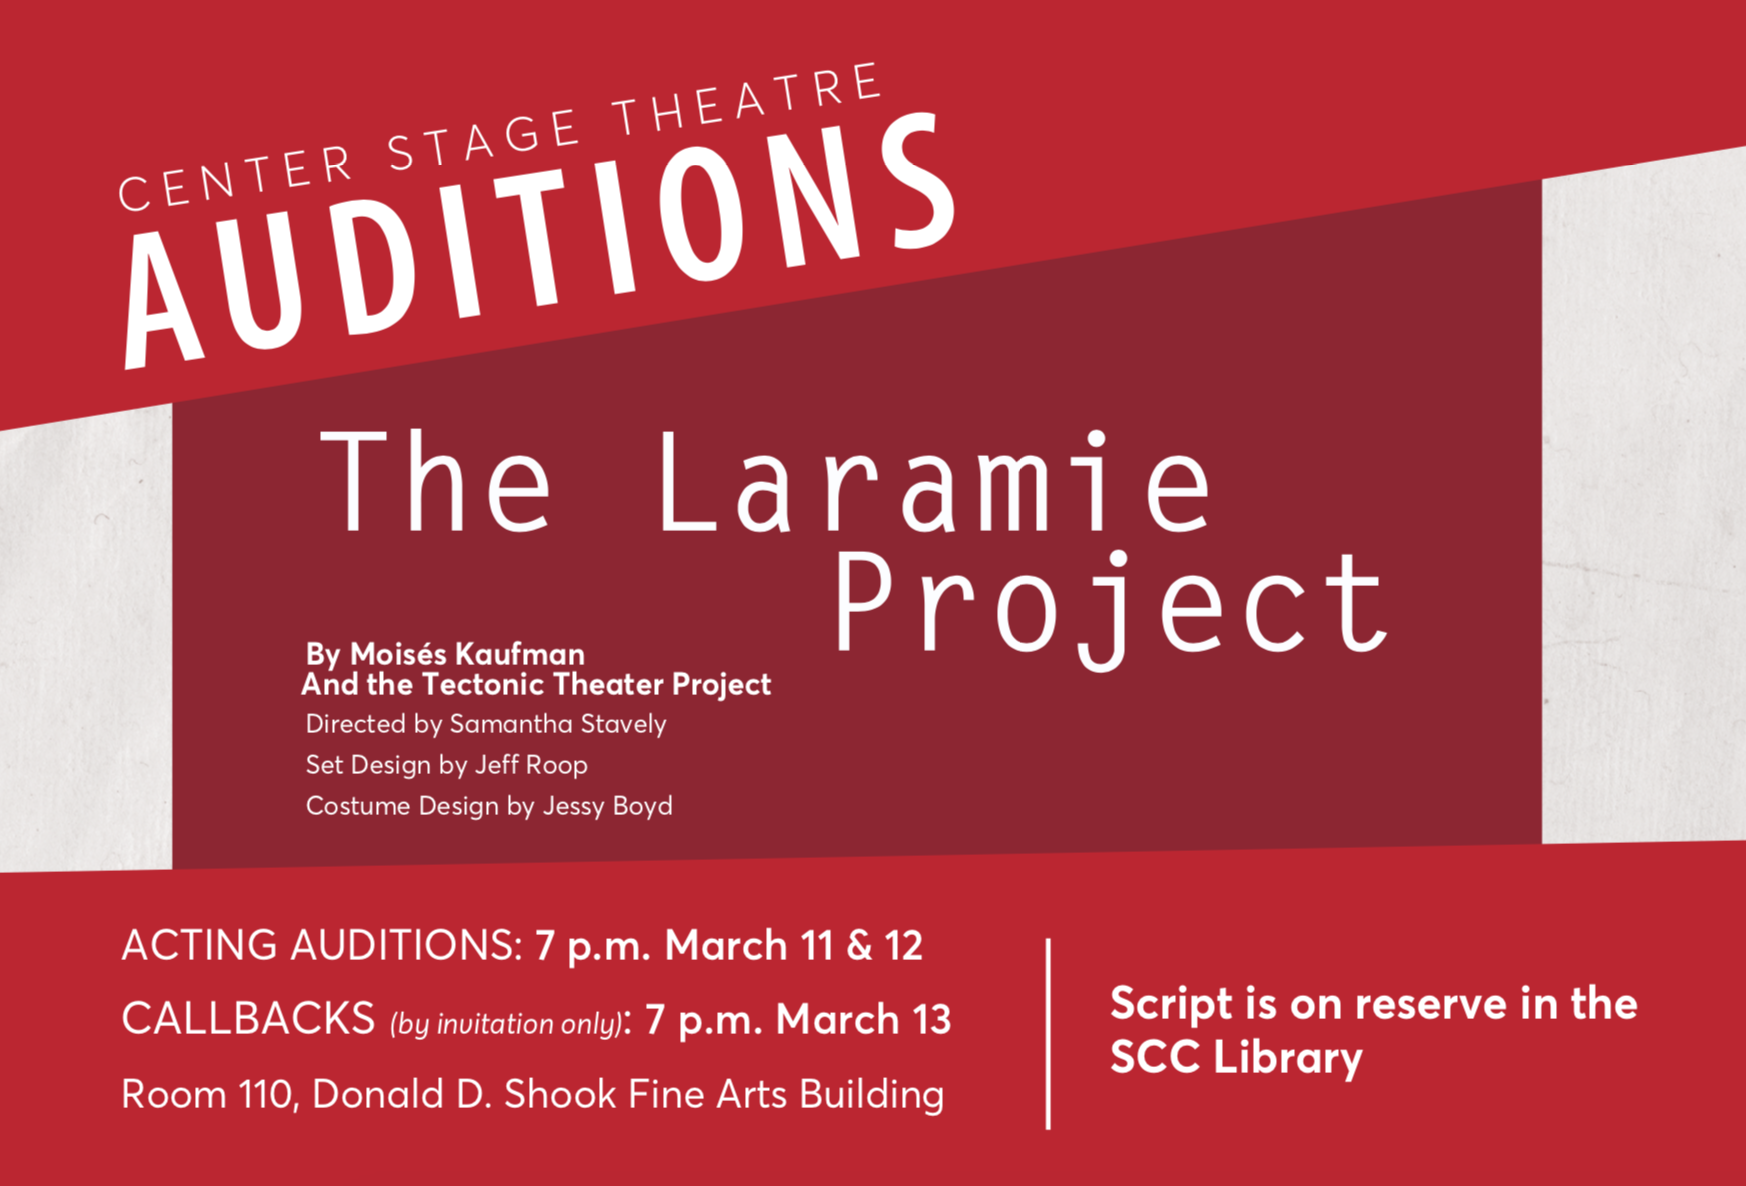 laramie-project-auditions-long